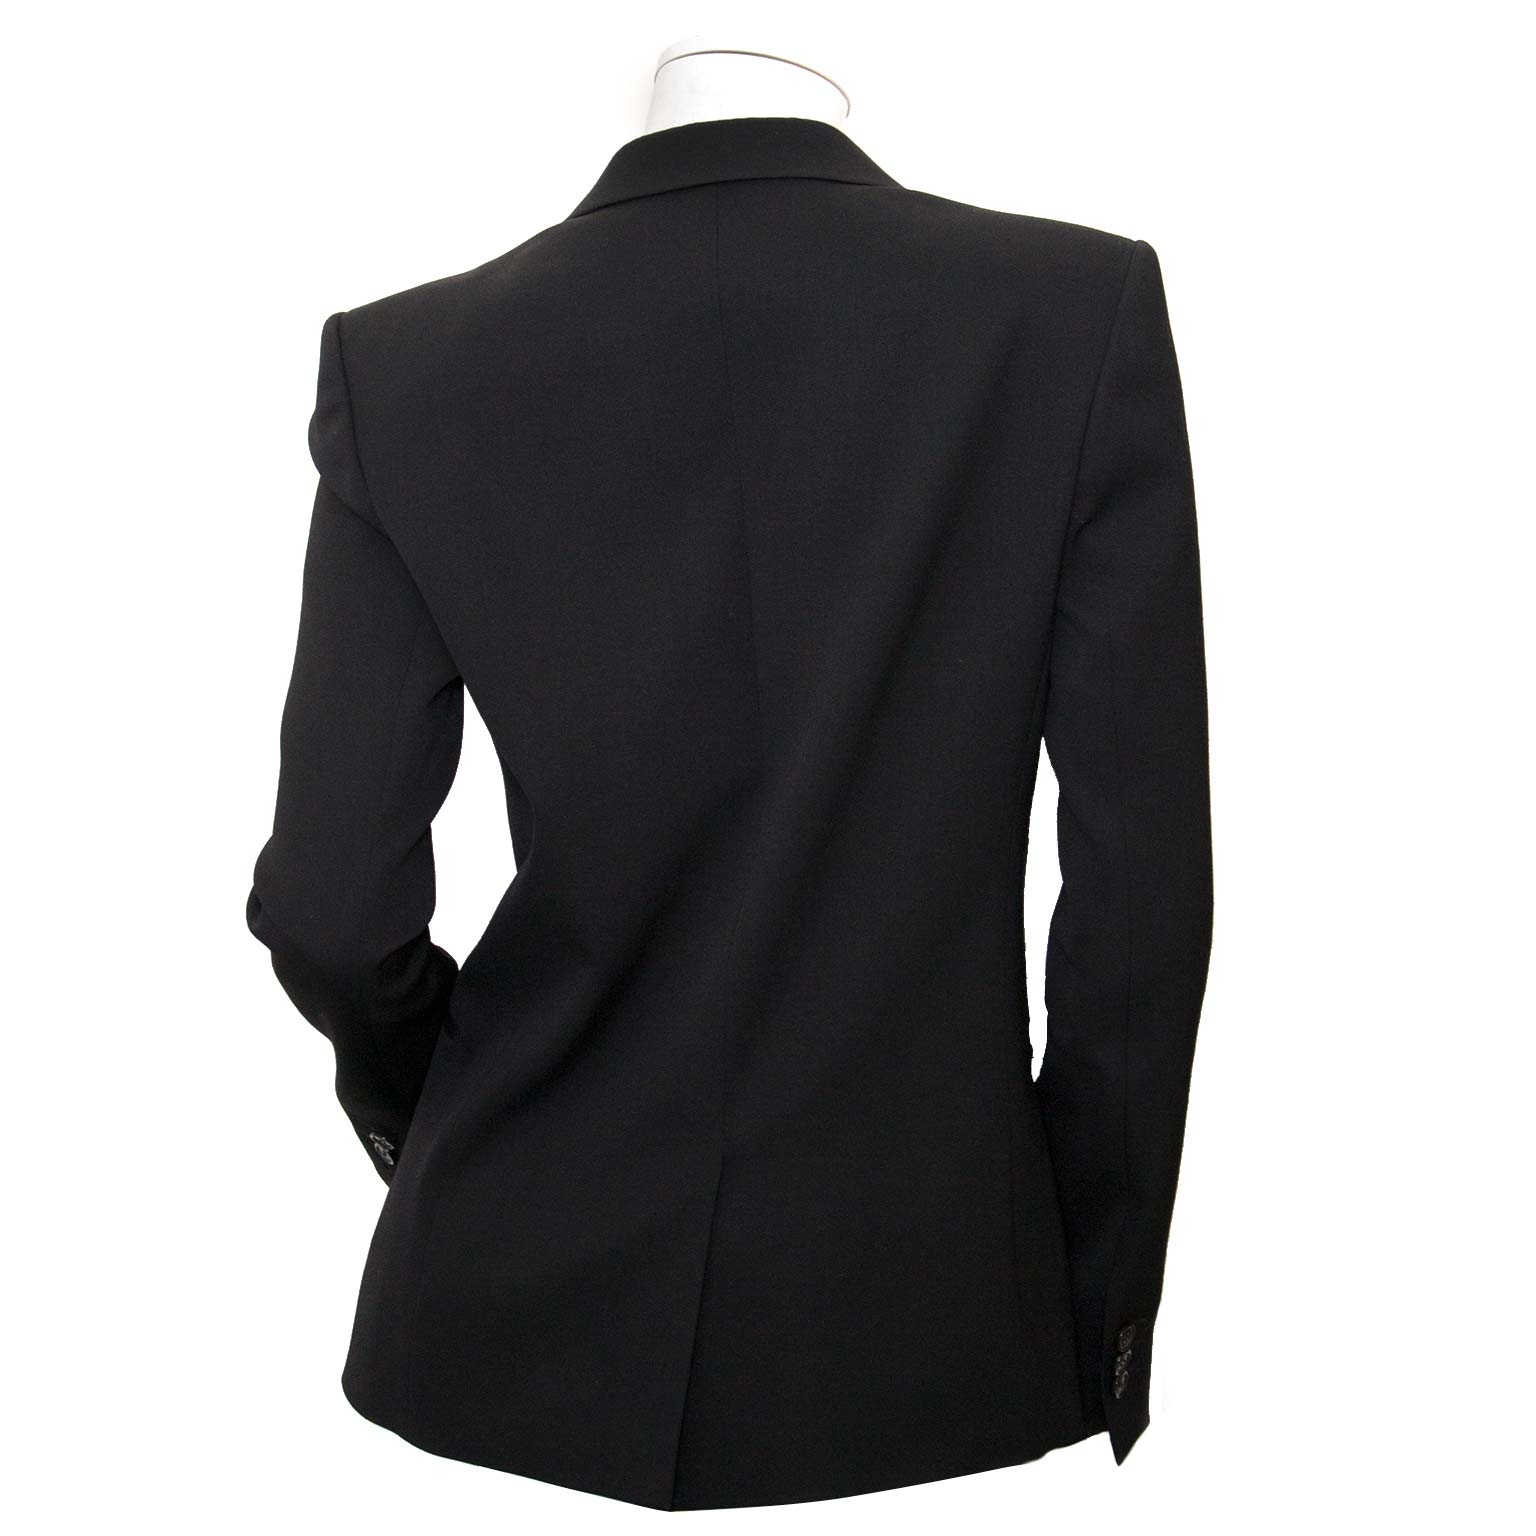 balmain black blazer now for sale at labellov vintage fashion webshop belgium